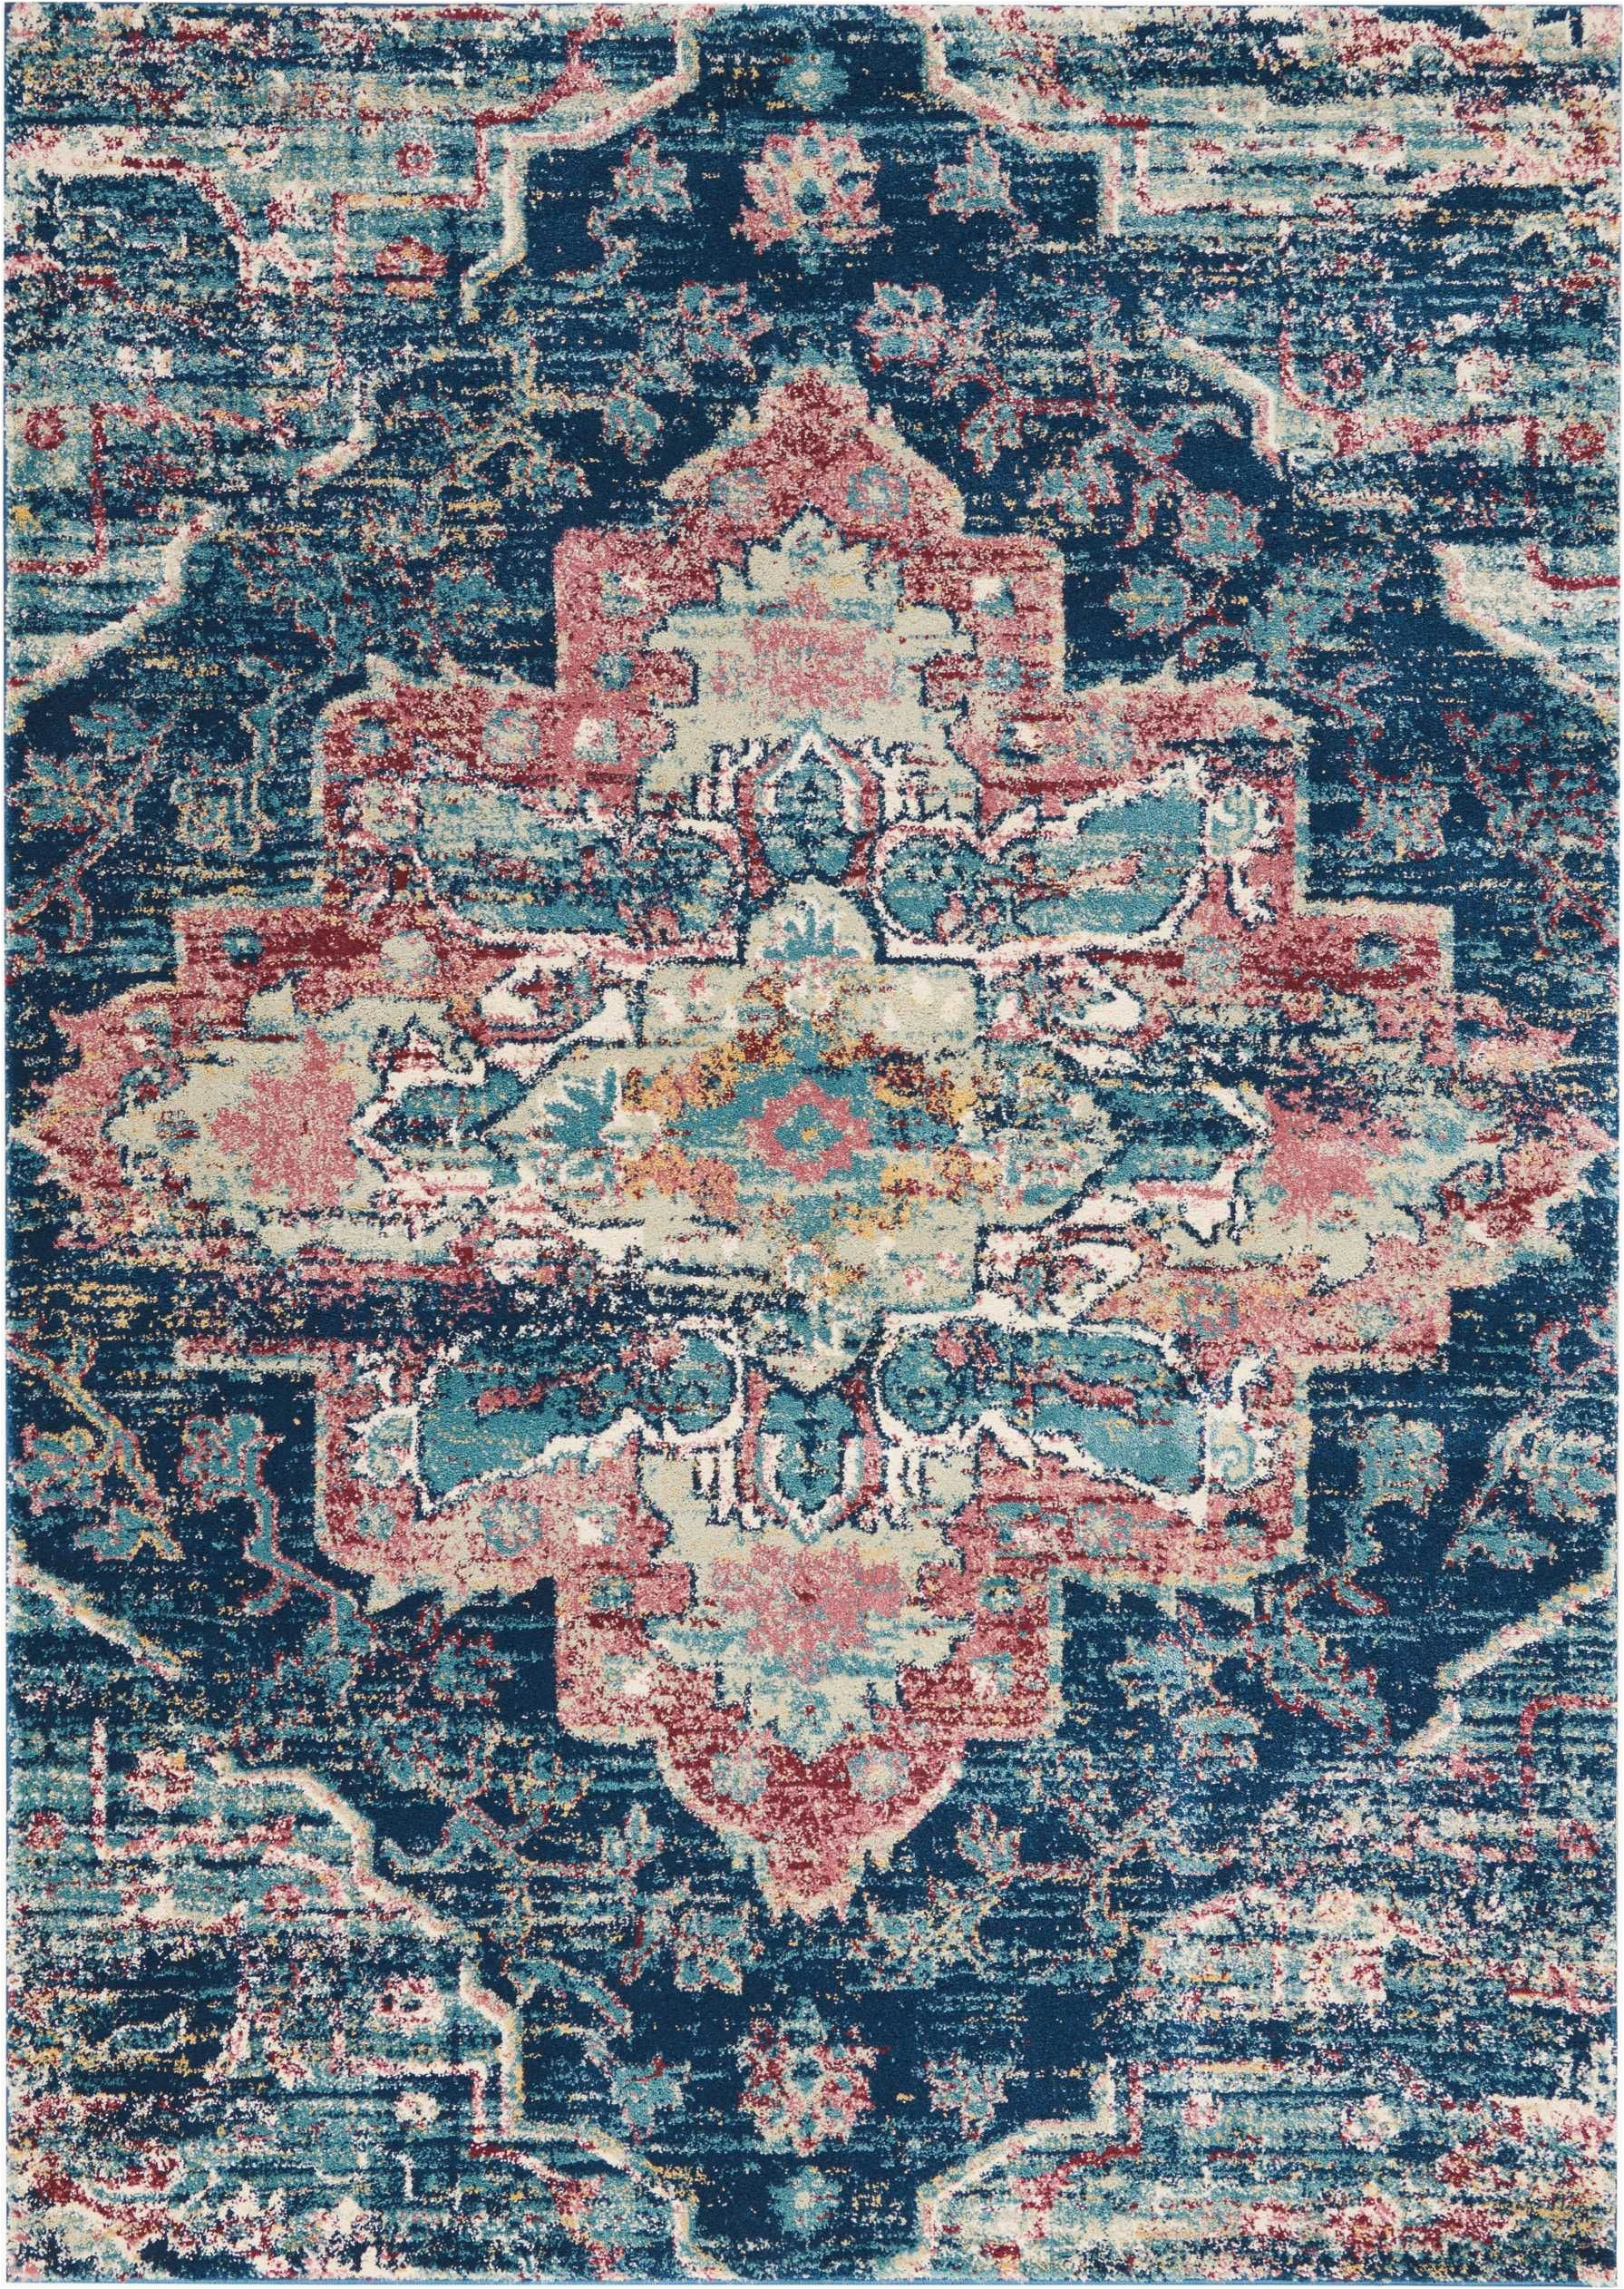 Pink and Blue Persian Rug Fss13 Fusion Navy Pink Traditional Persian Rug Design Takes